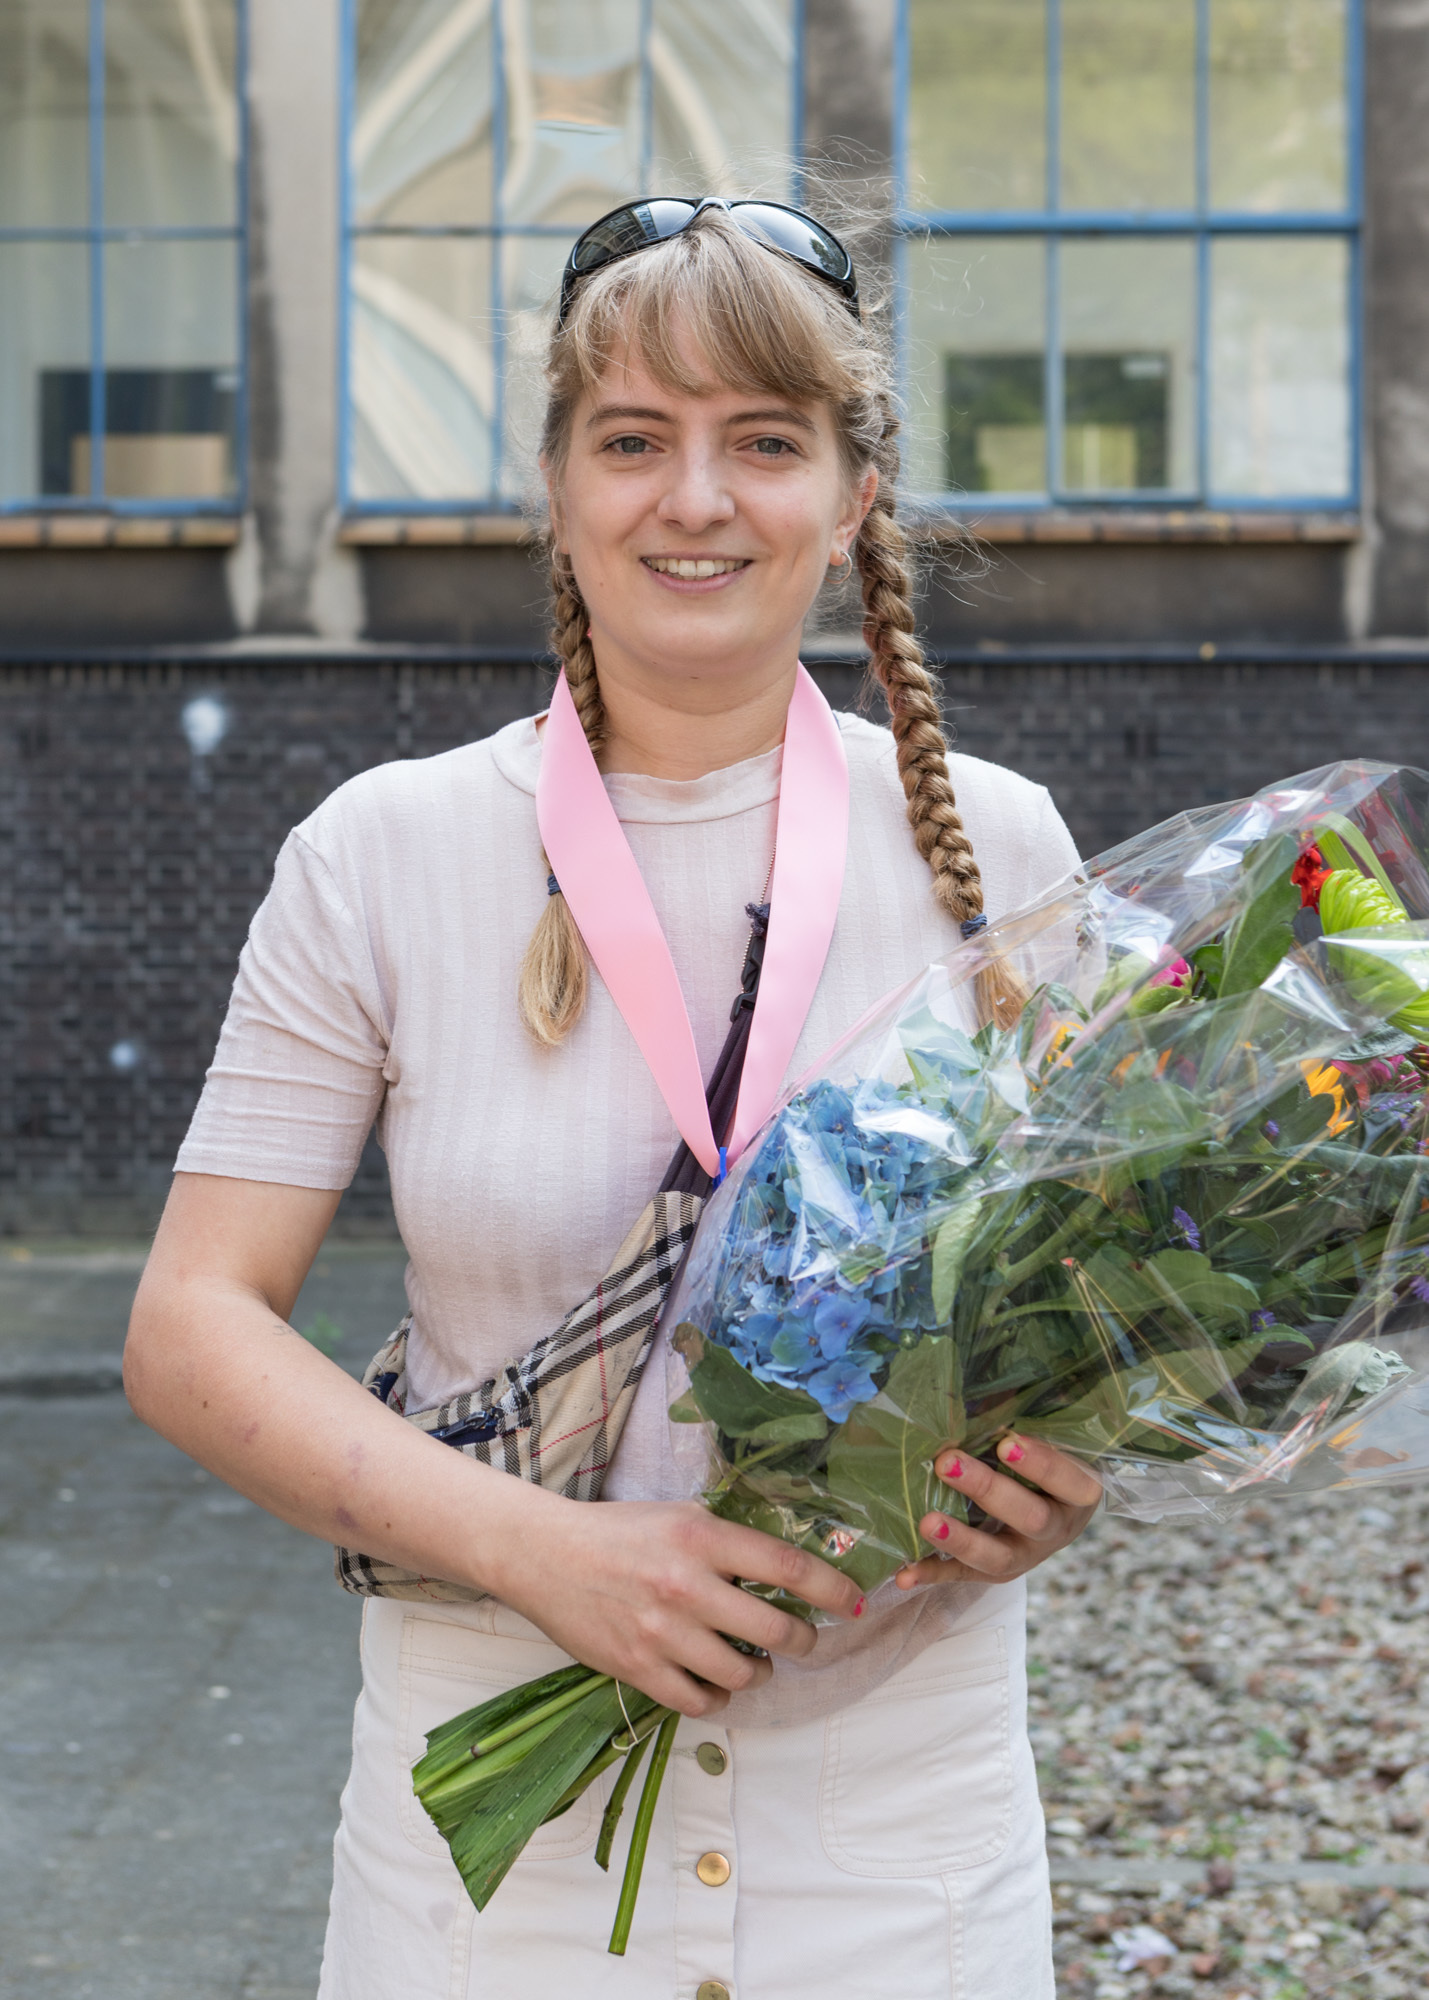 Leonie Schneider, Winner Stroom Den Haag Encouragement Award 2018